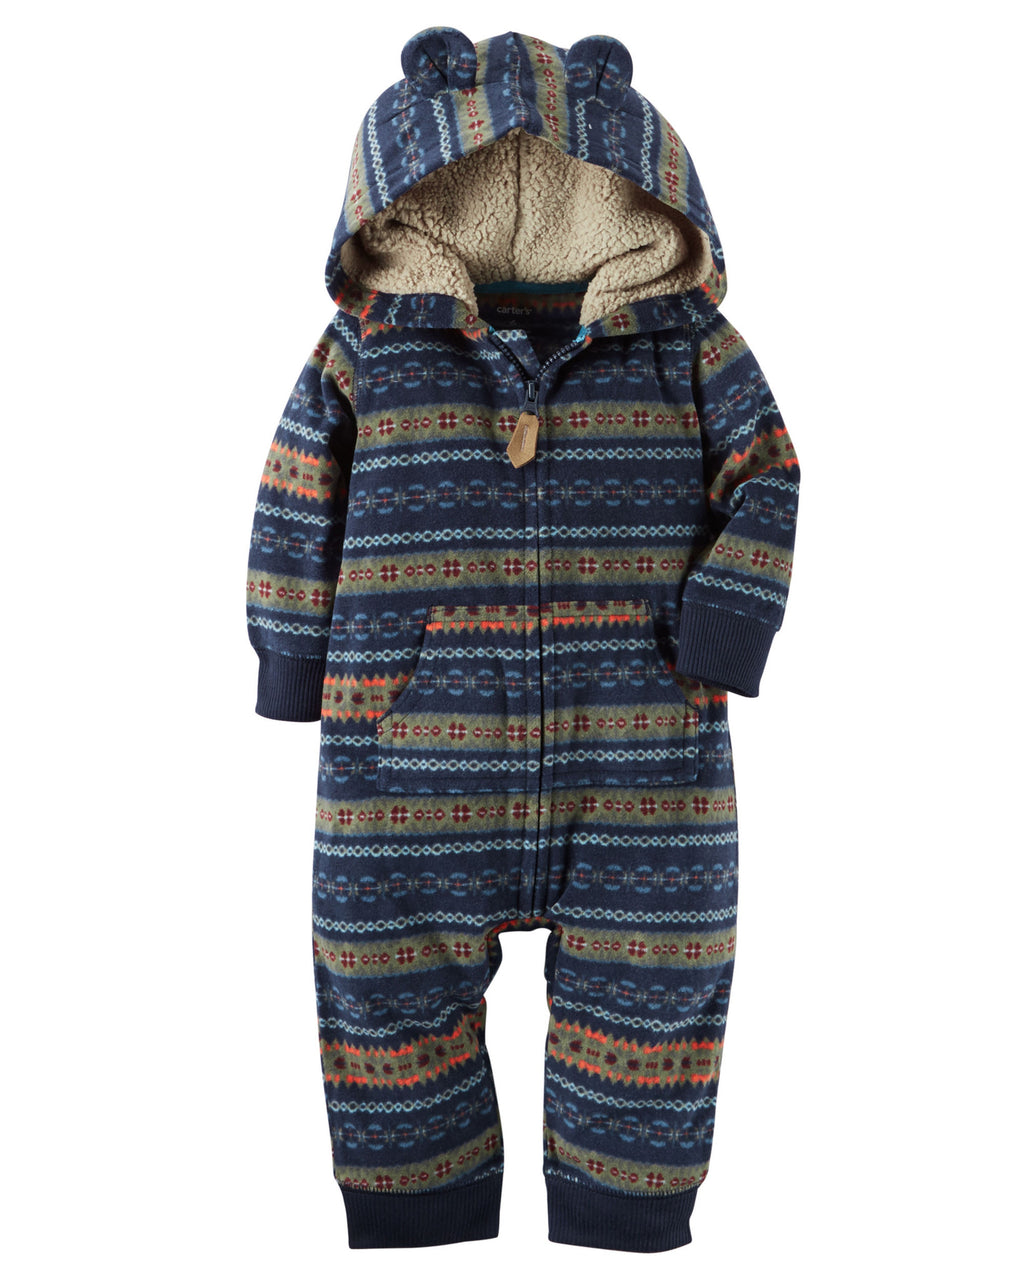 Enterito CARTERS Hooded Fleece Jumpsuit